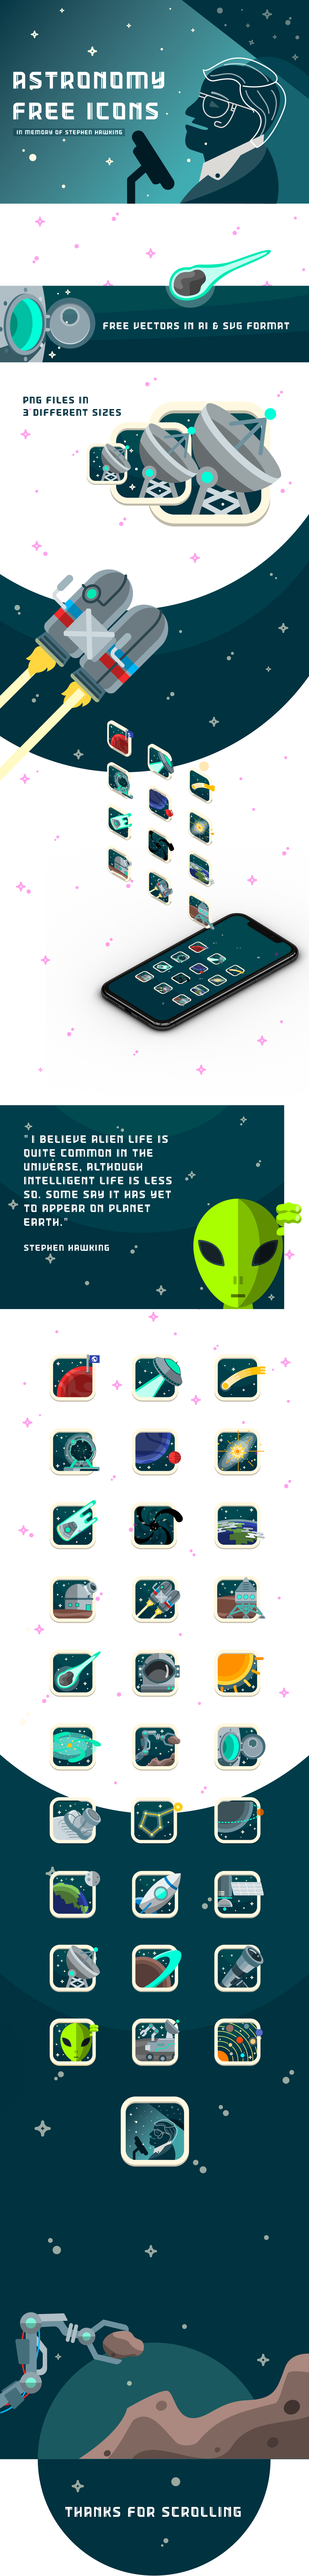 astronomy_free_icons_in_memory_of_stephen_hawking